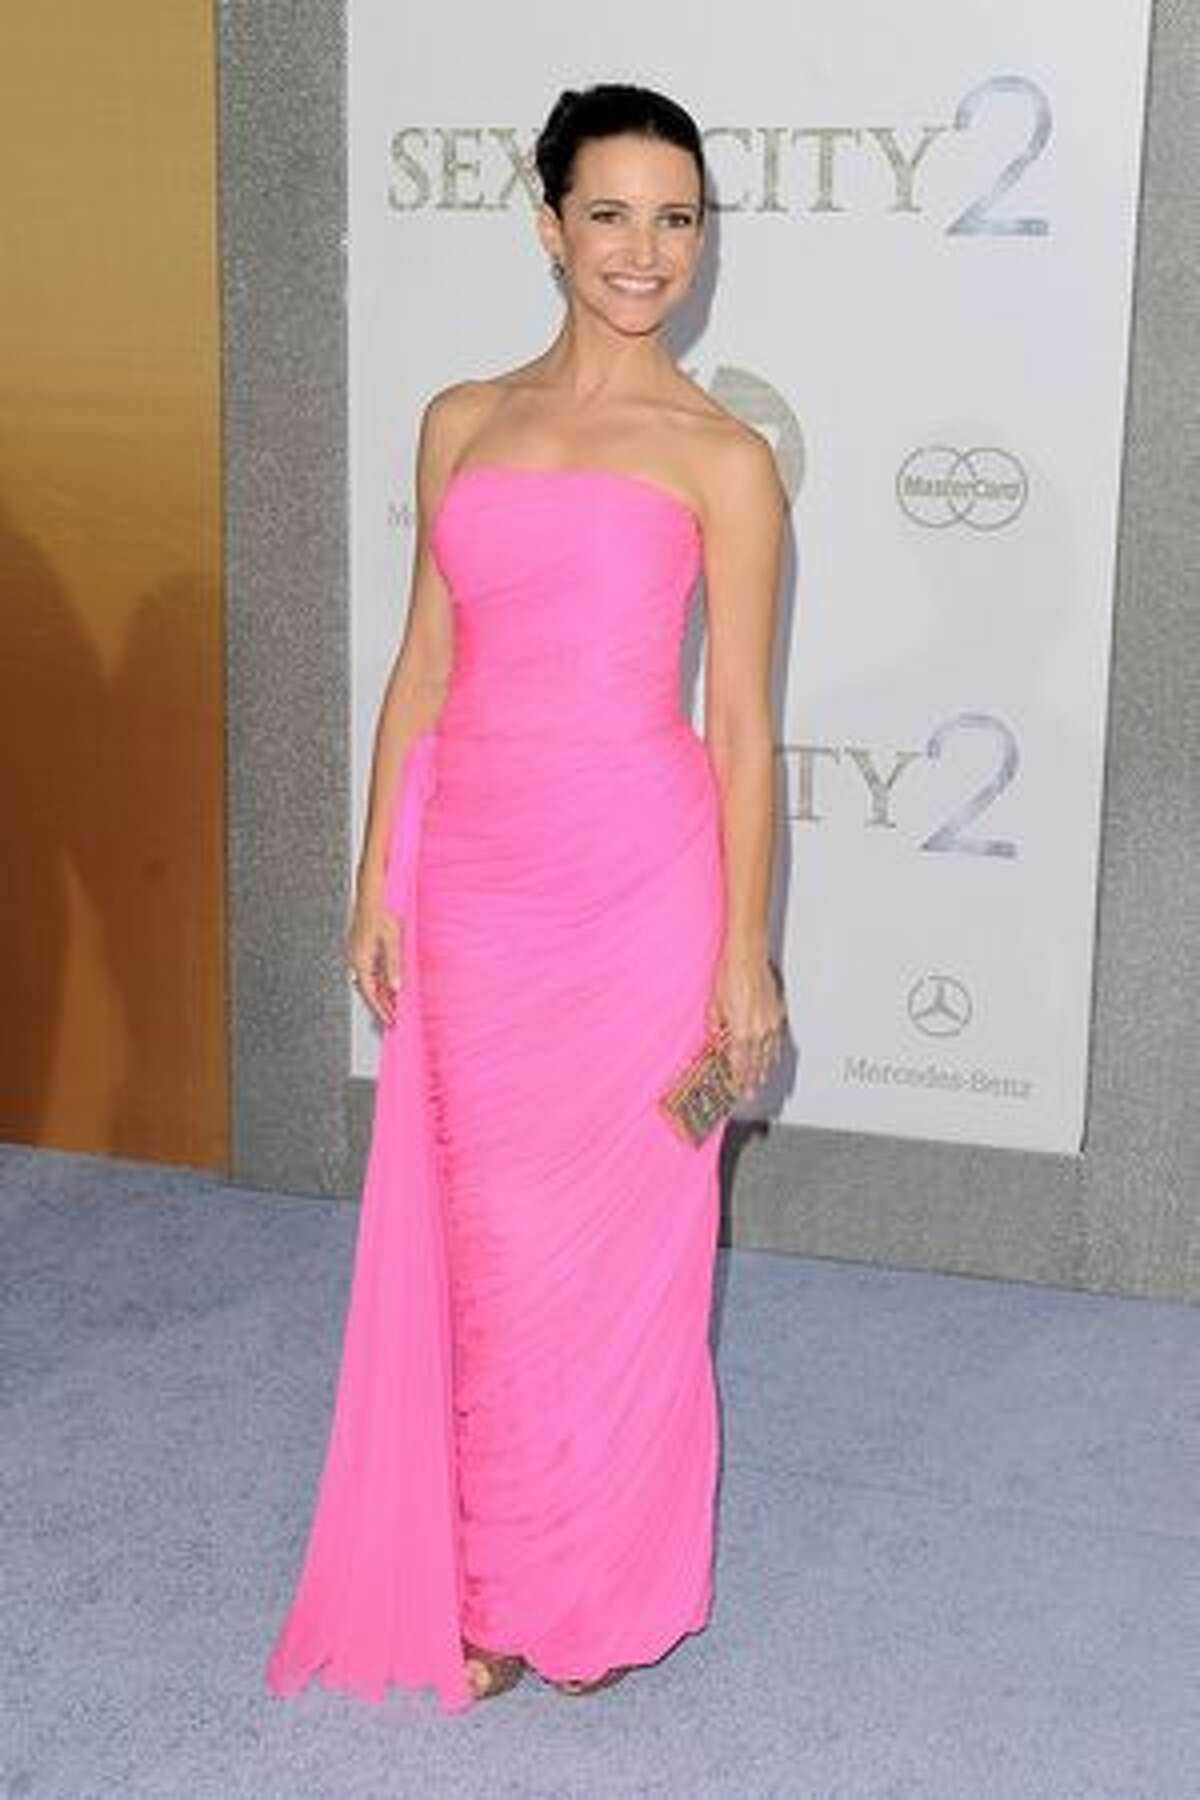 Actress Kristin Davis attends the premiere of